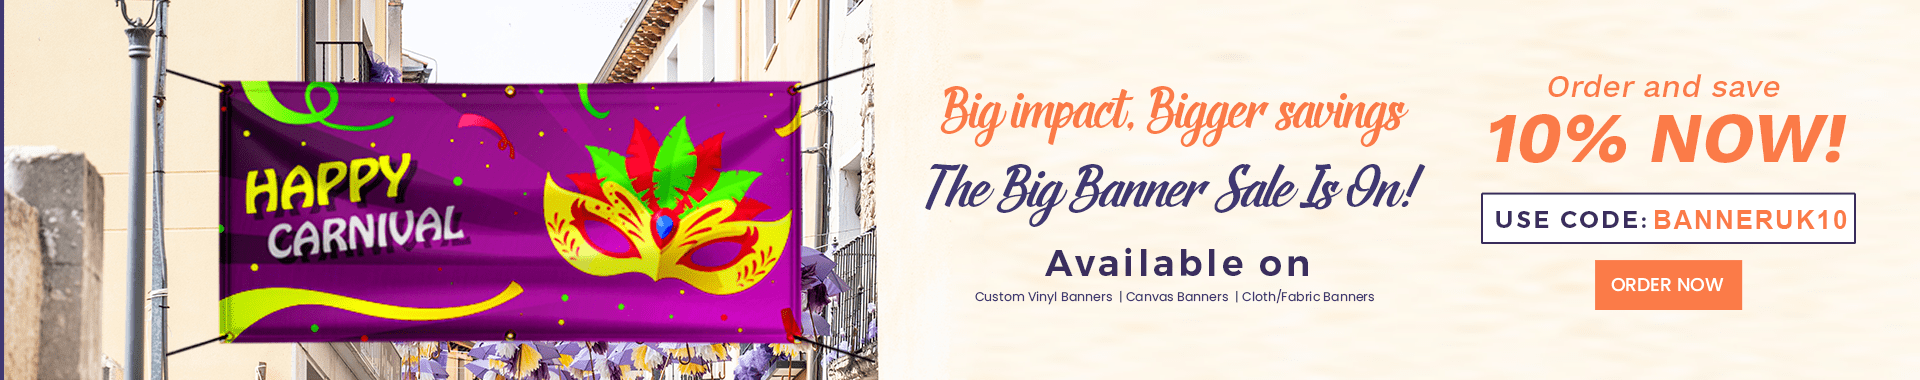 Our BIG Banner sale is live. Pay 10% less!